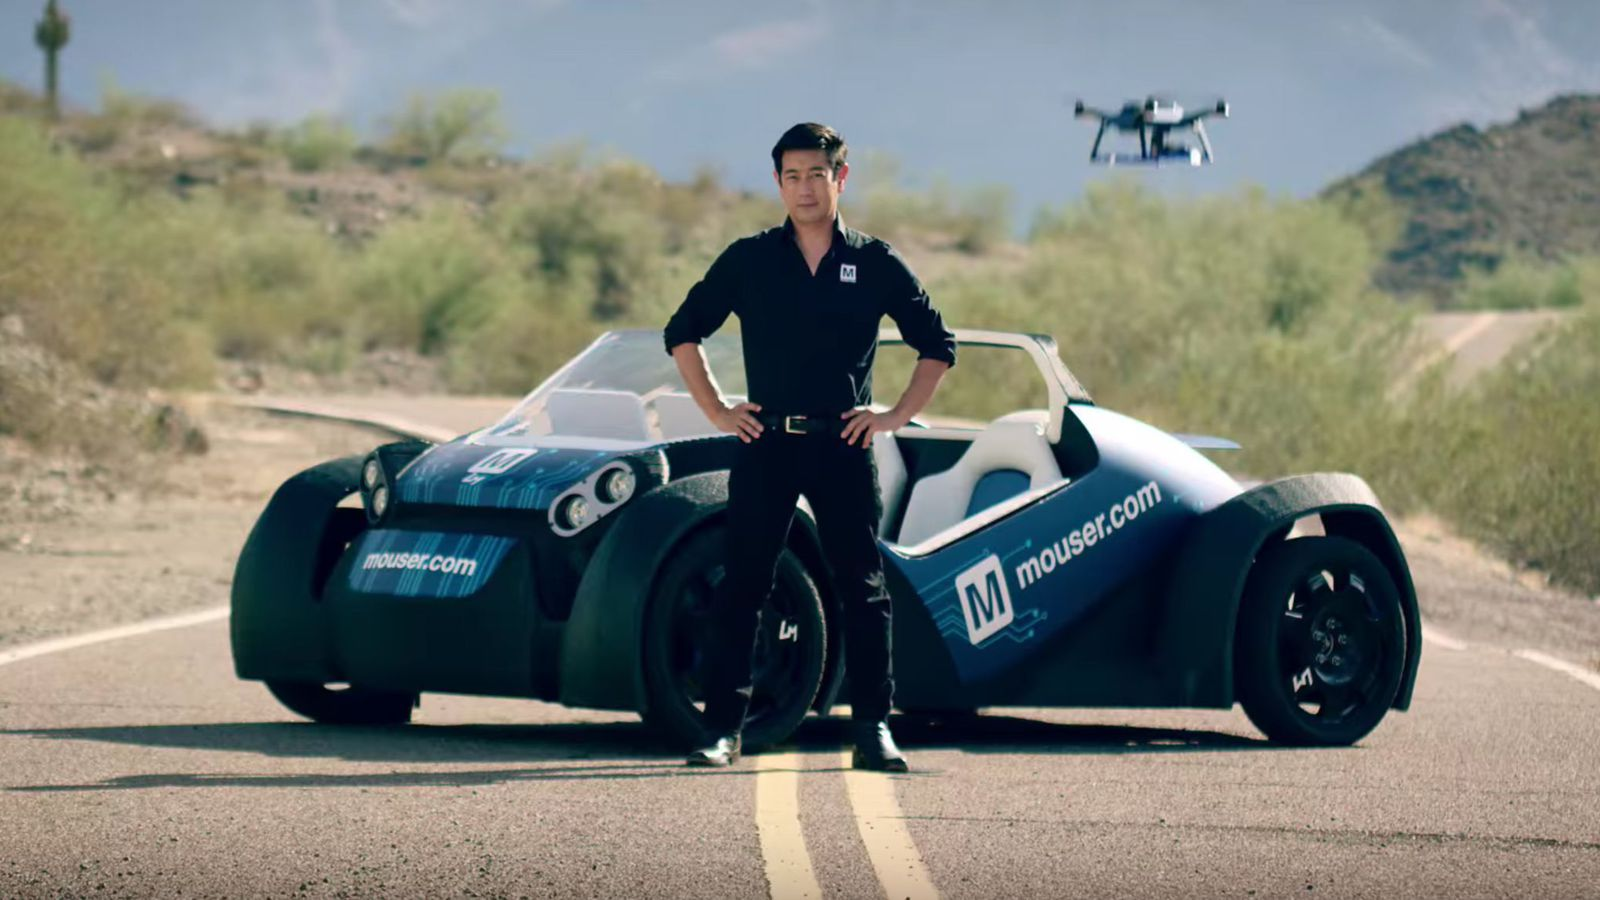 source: https://www.cnet.com/roadshow/news/local-motors-3d-printed-car-now-has-a-drone-because-autonomy/